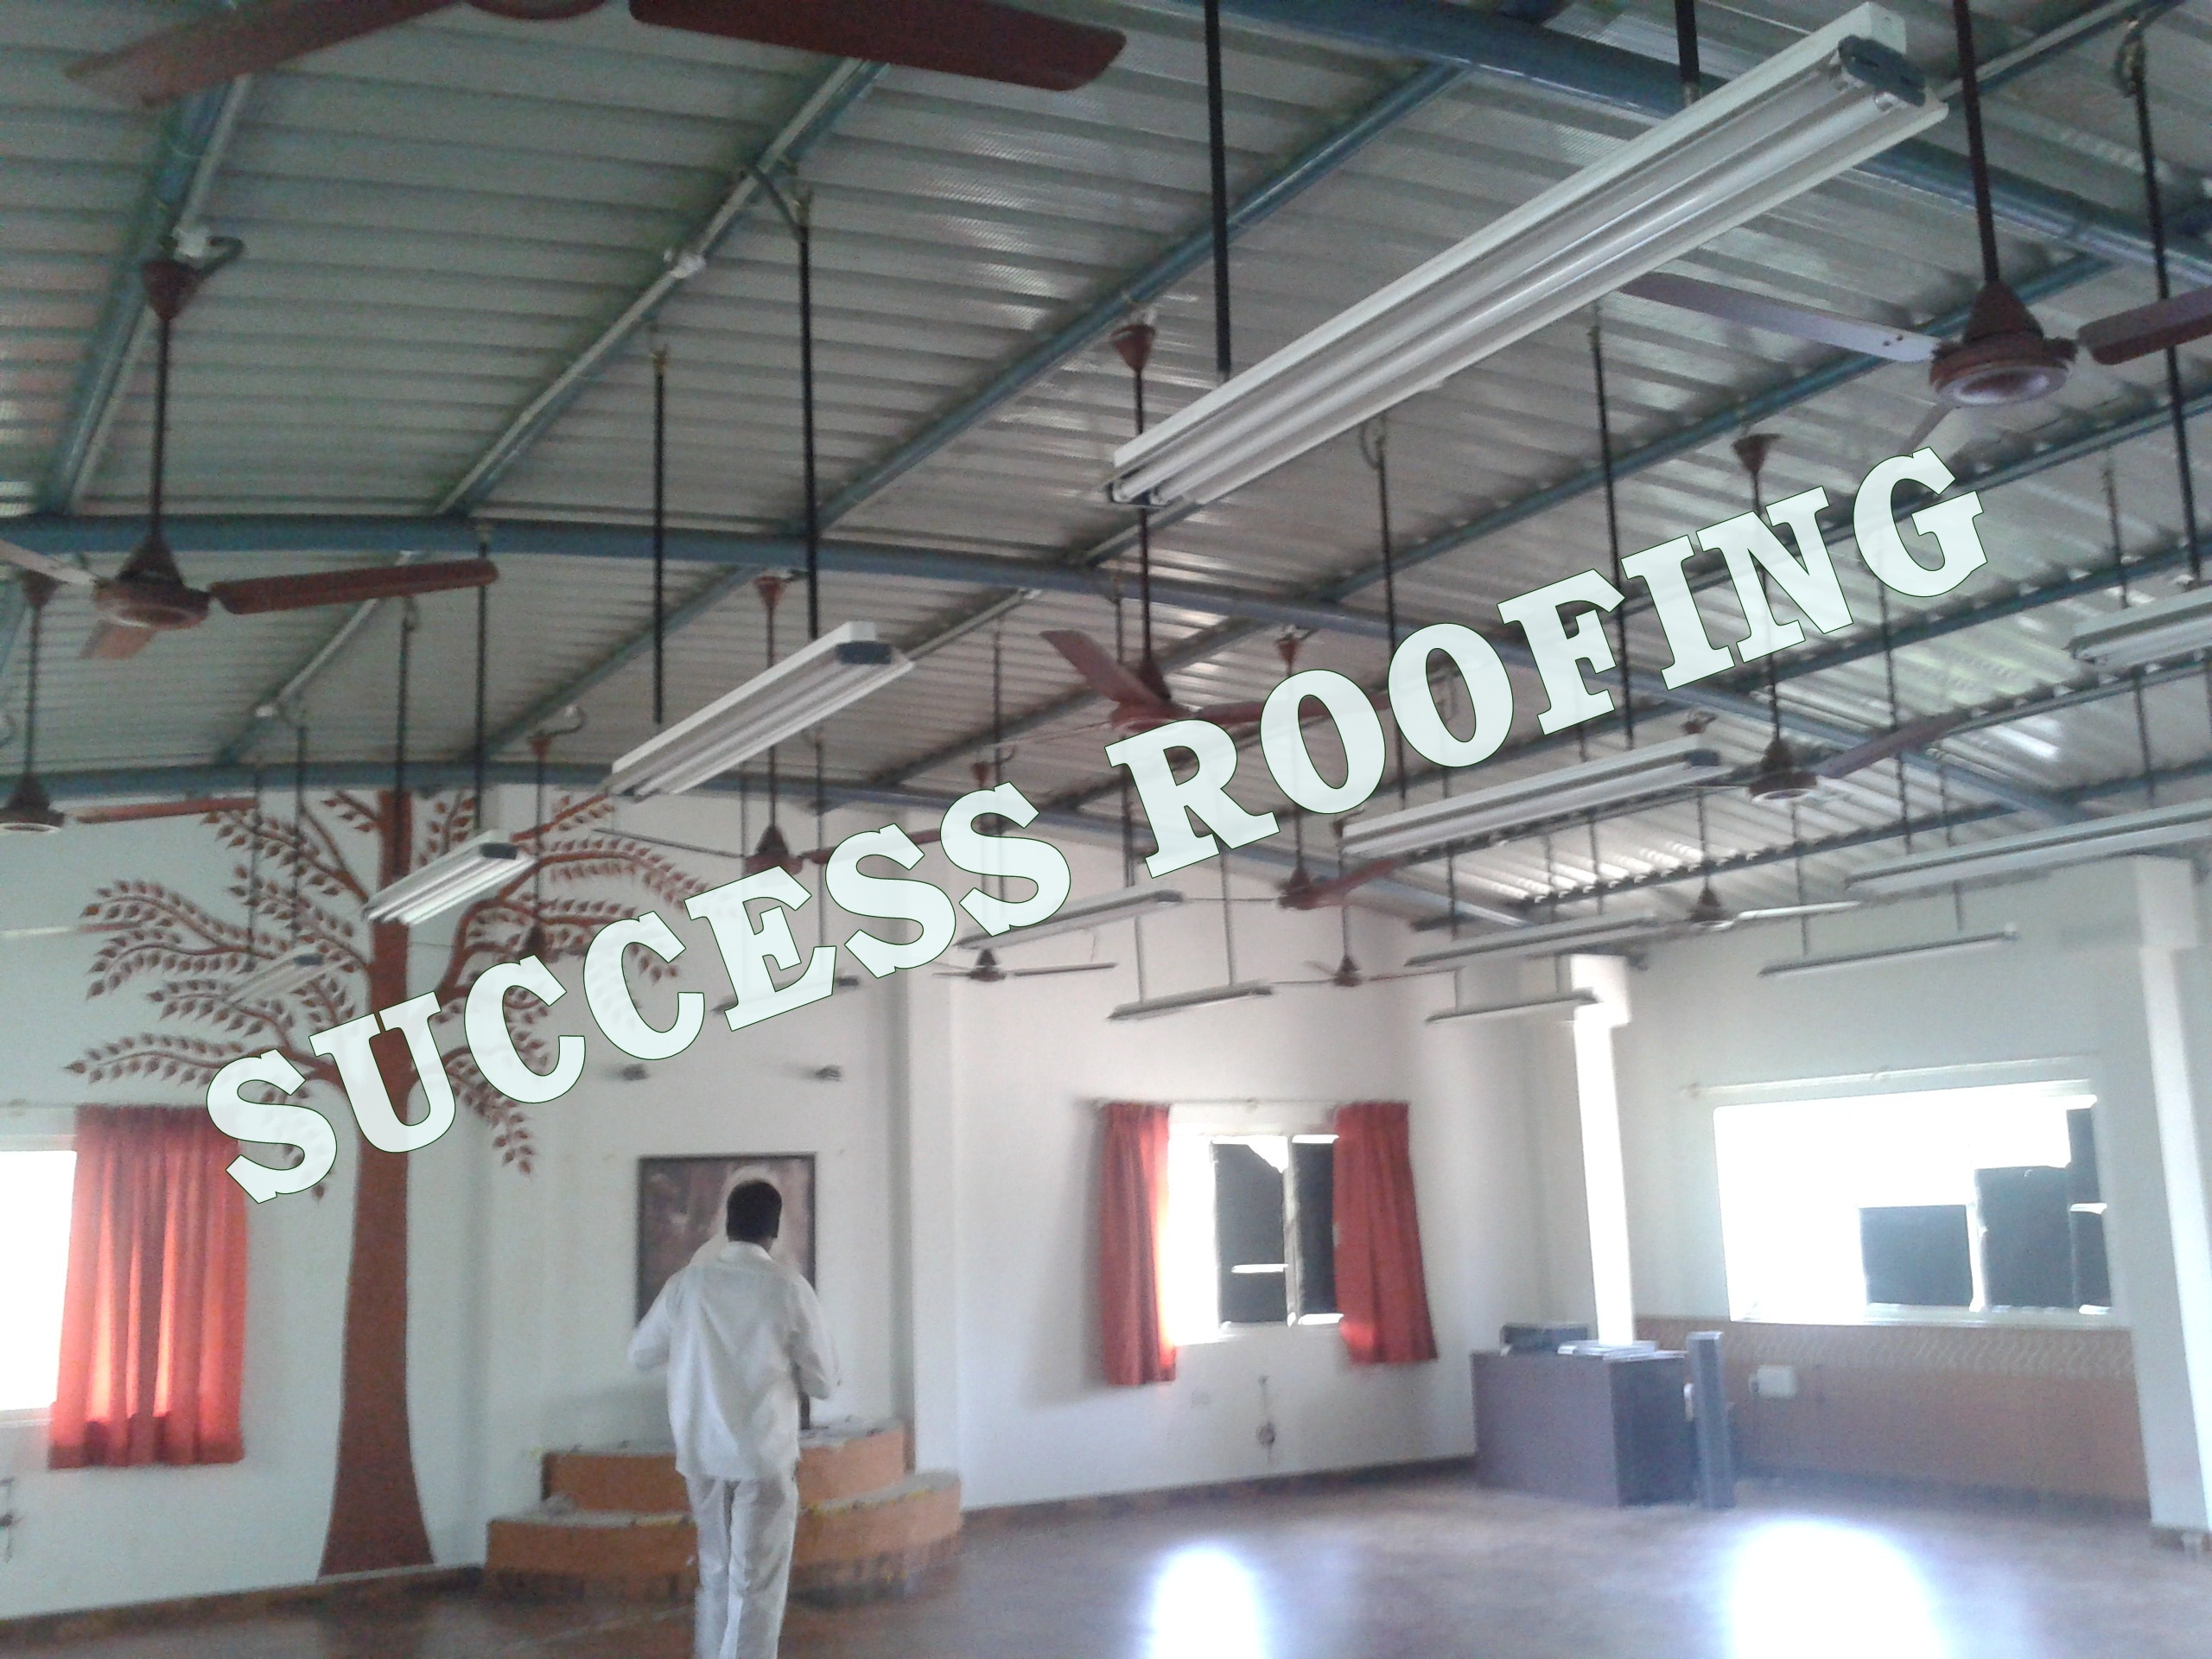 . Multi Purpose Hall Roofing Shed Works In Chennai: We Are Leading  Contractor IN Chennai.We Are All Kinds Of Roofing Work. We Are Providing  Best Materiel ...